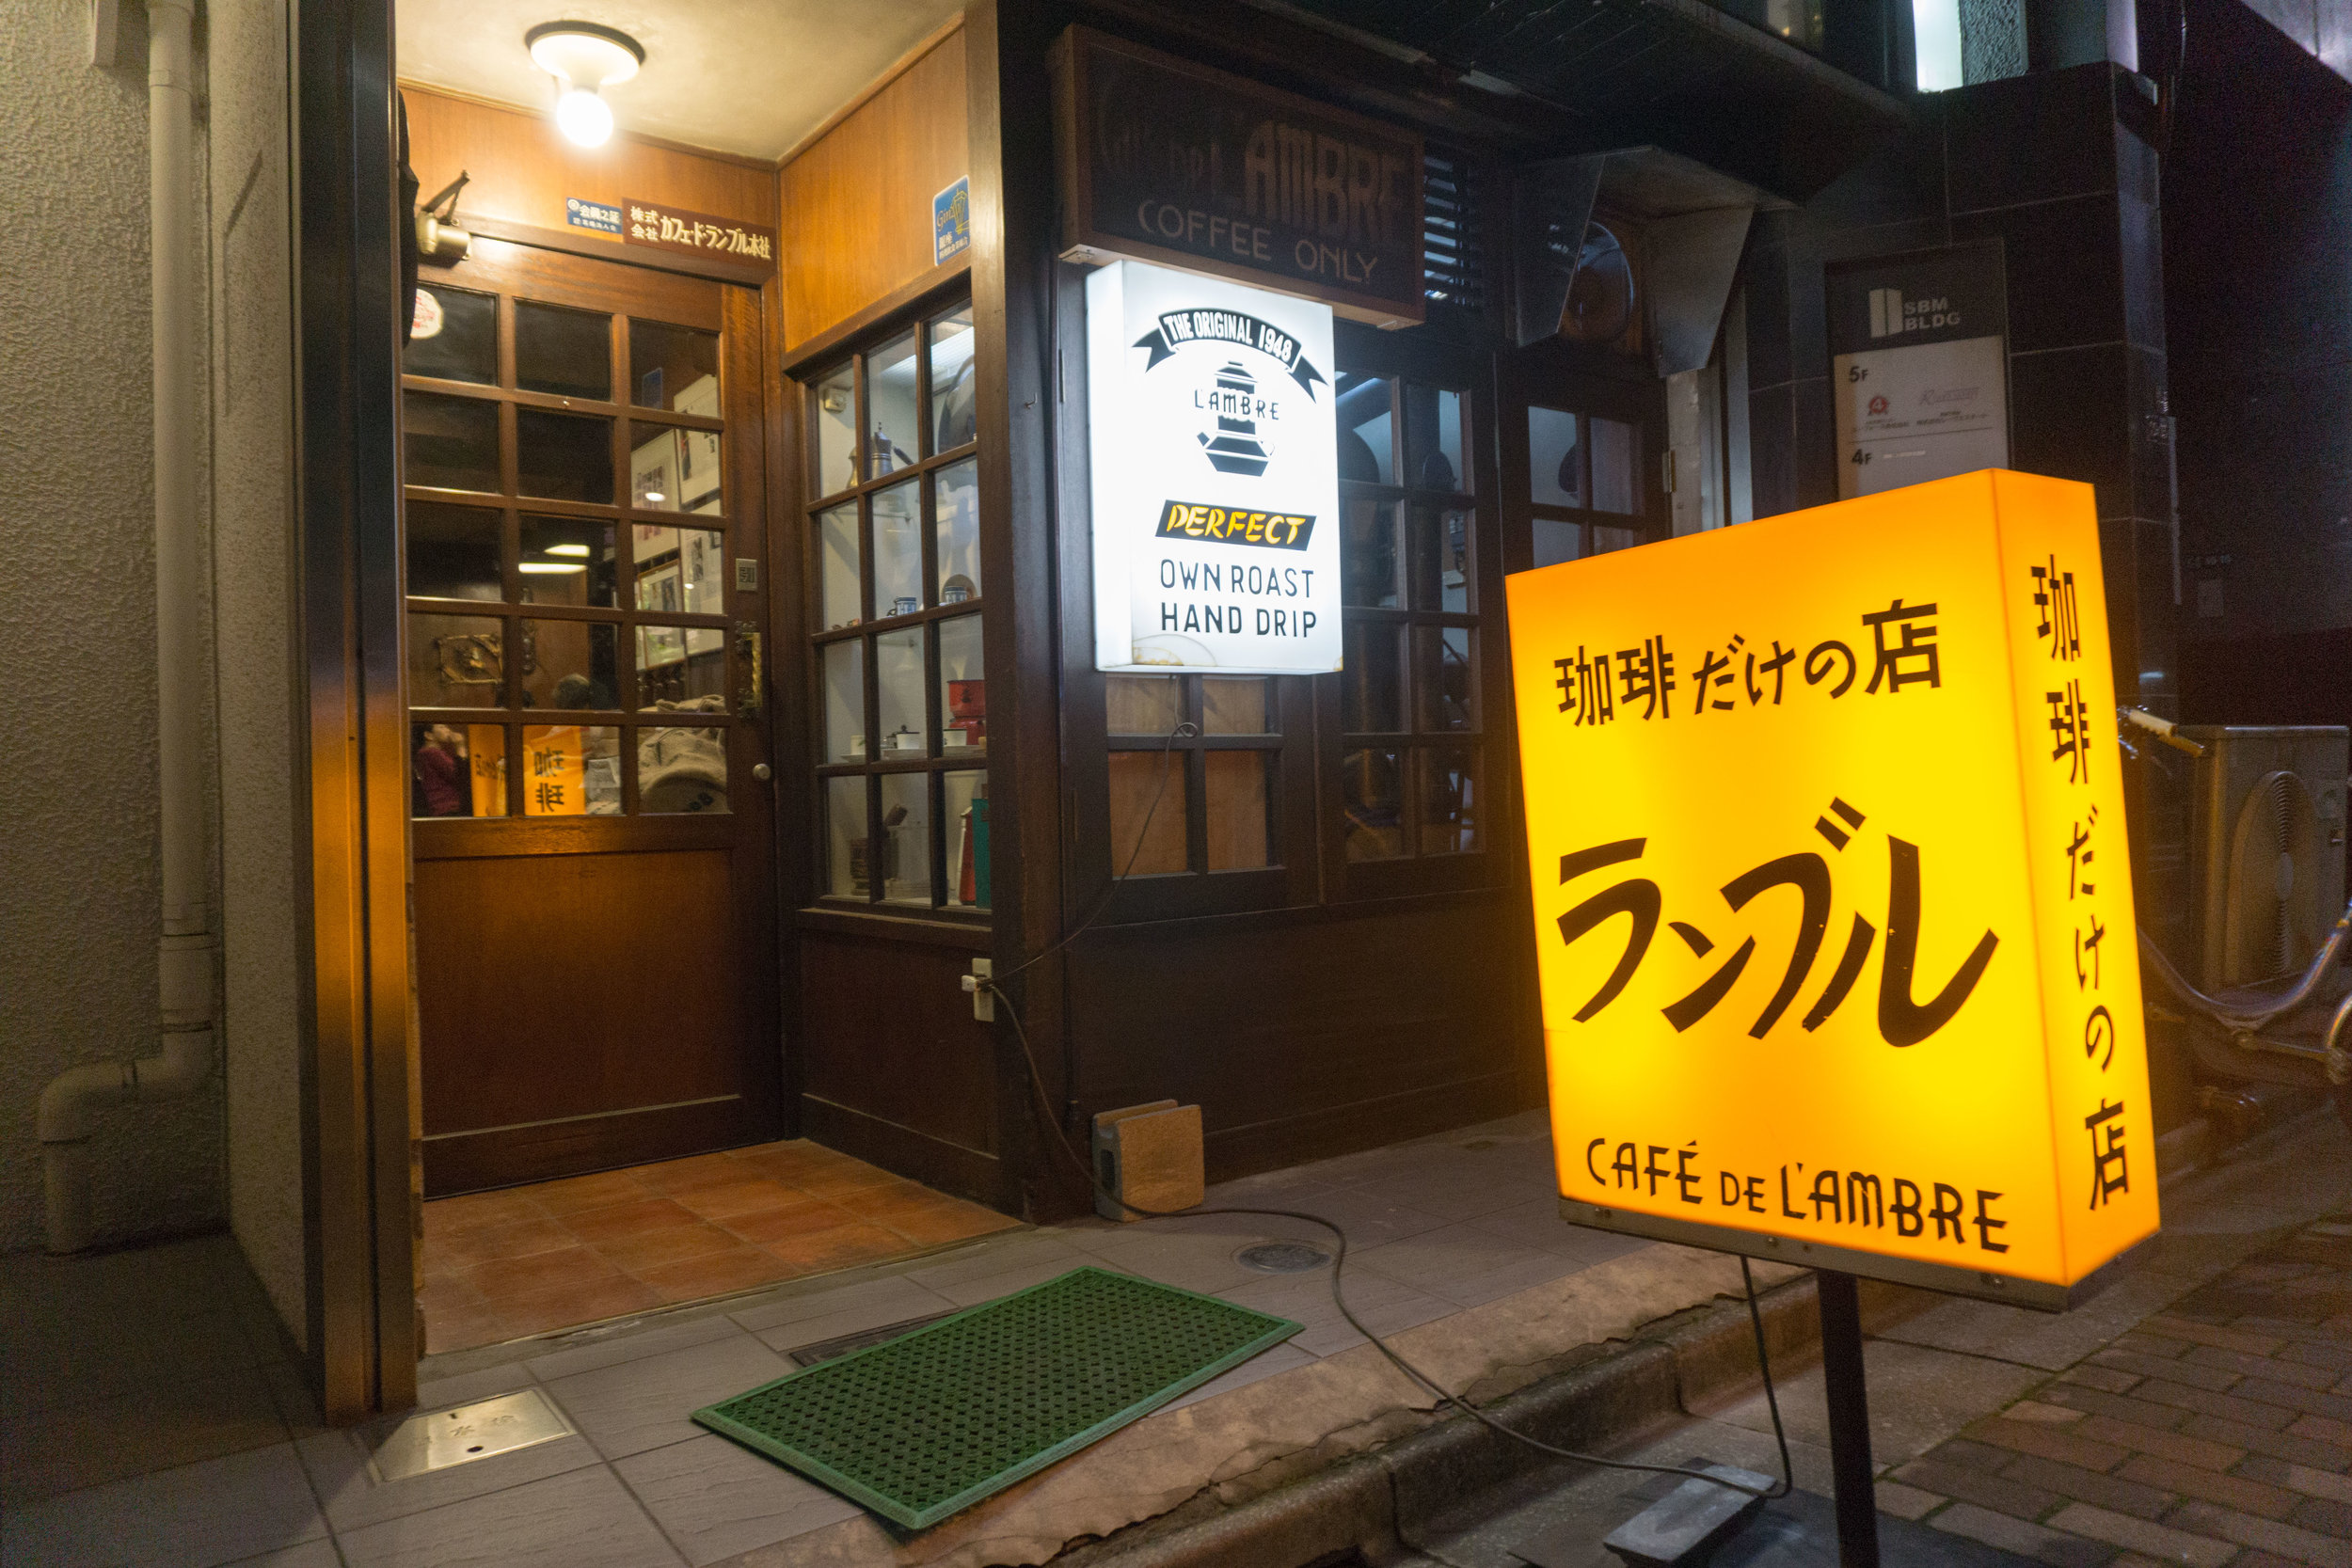 Cafe de l'Ambre - a time capsule into the smokey coffee shops of yesteryear